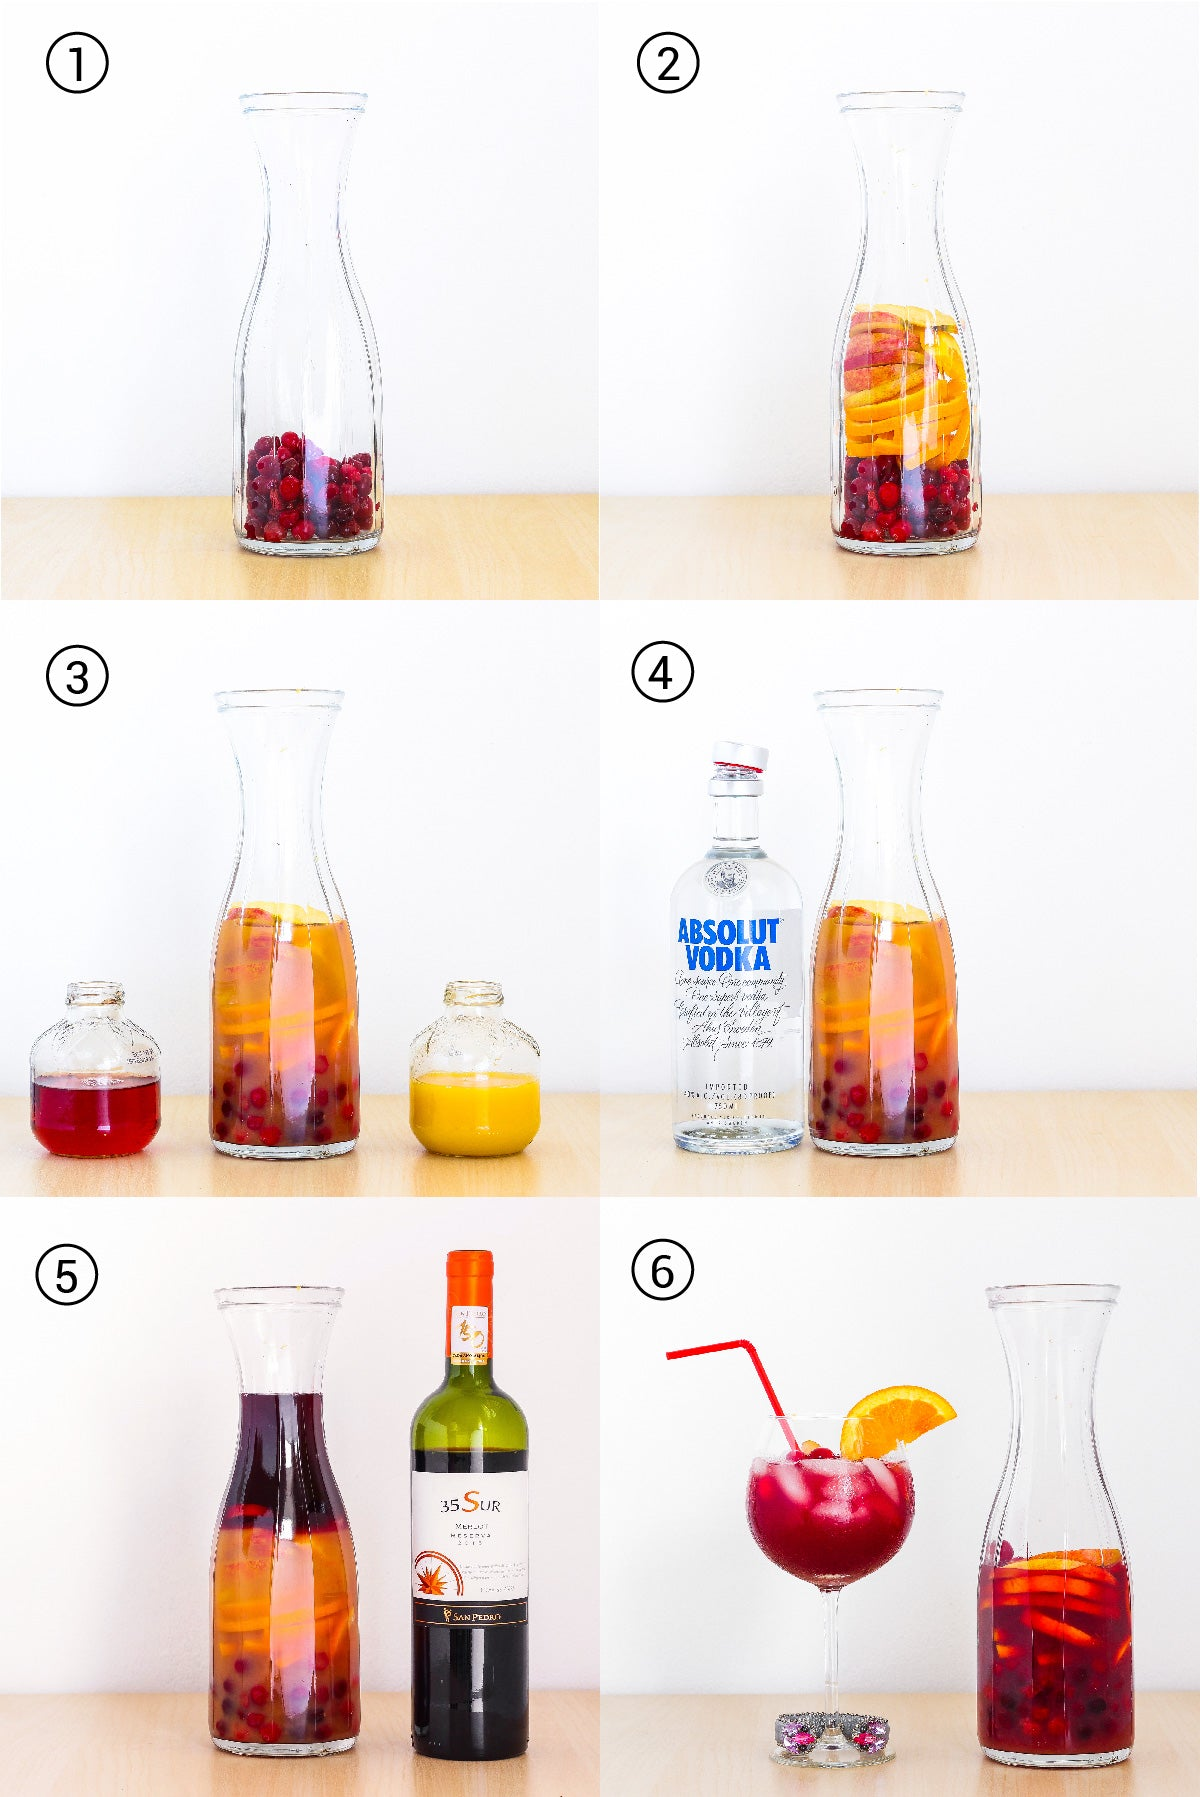 Step by step to prepare a delicious autumn sangria.